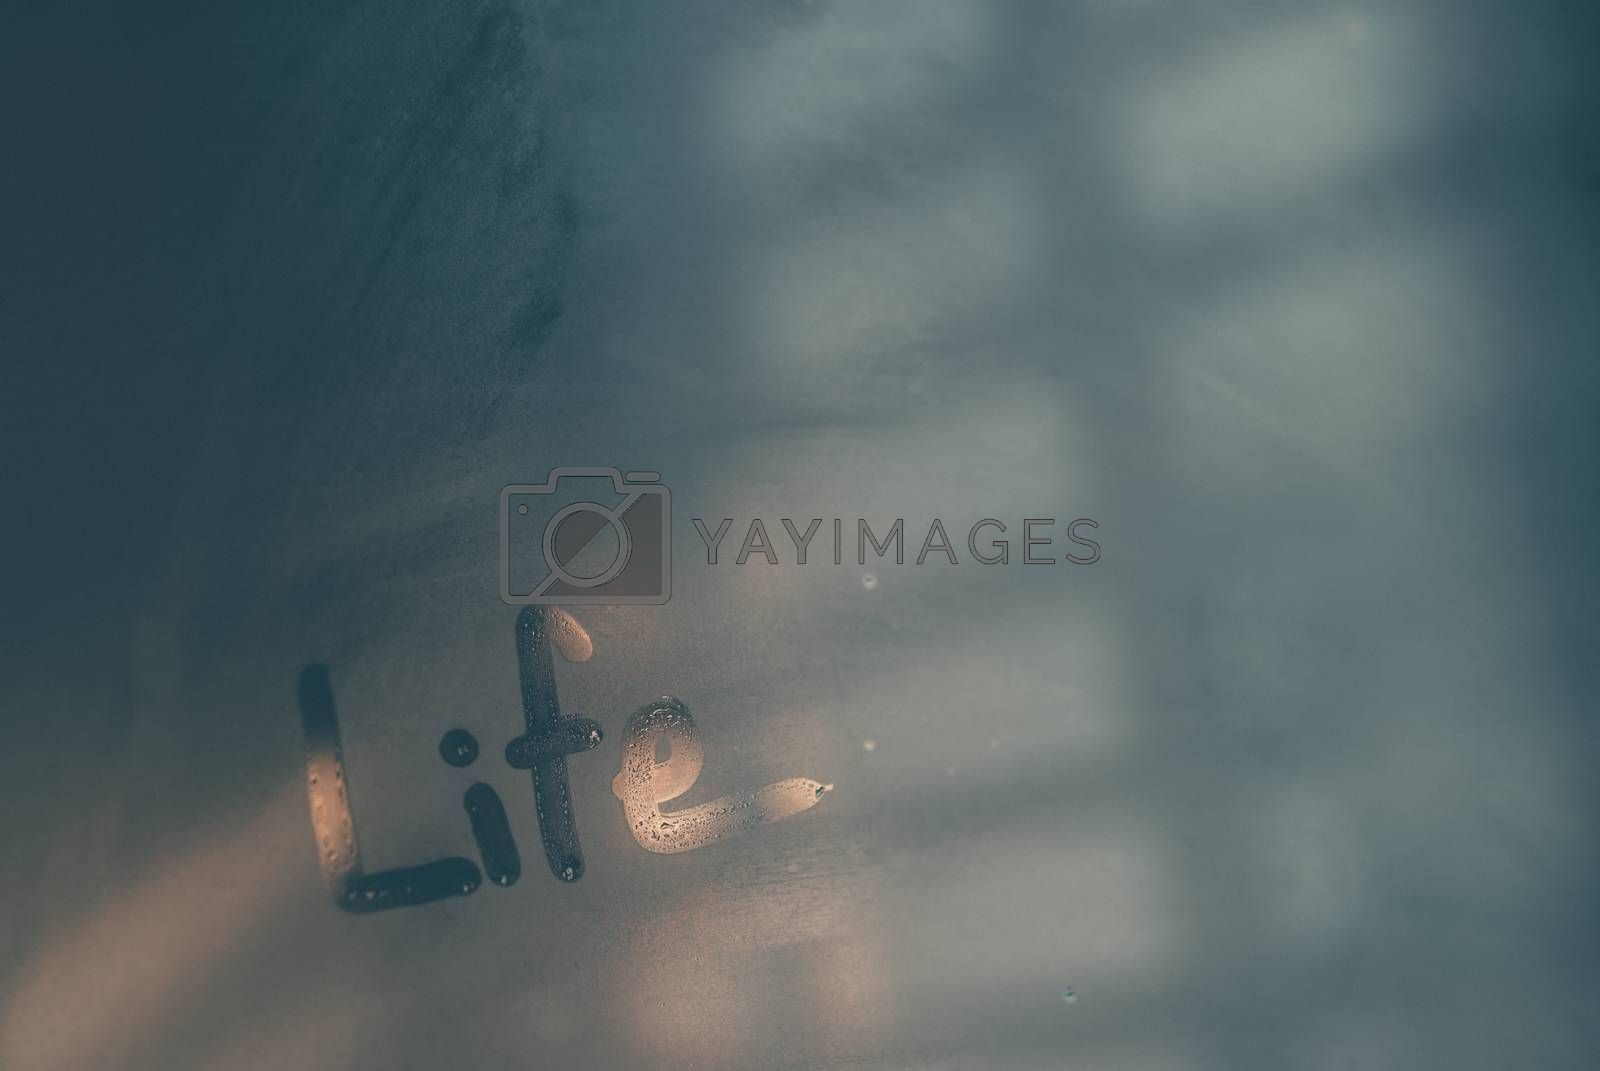 Abstract conceptual background, misted-up window glass with written word on it, life concept